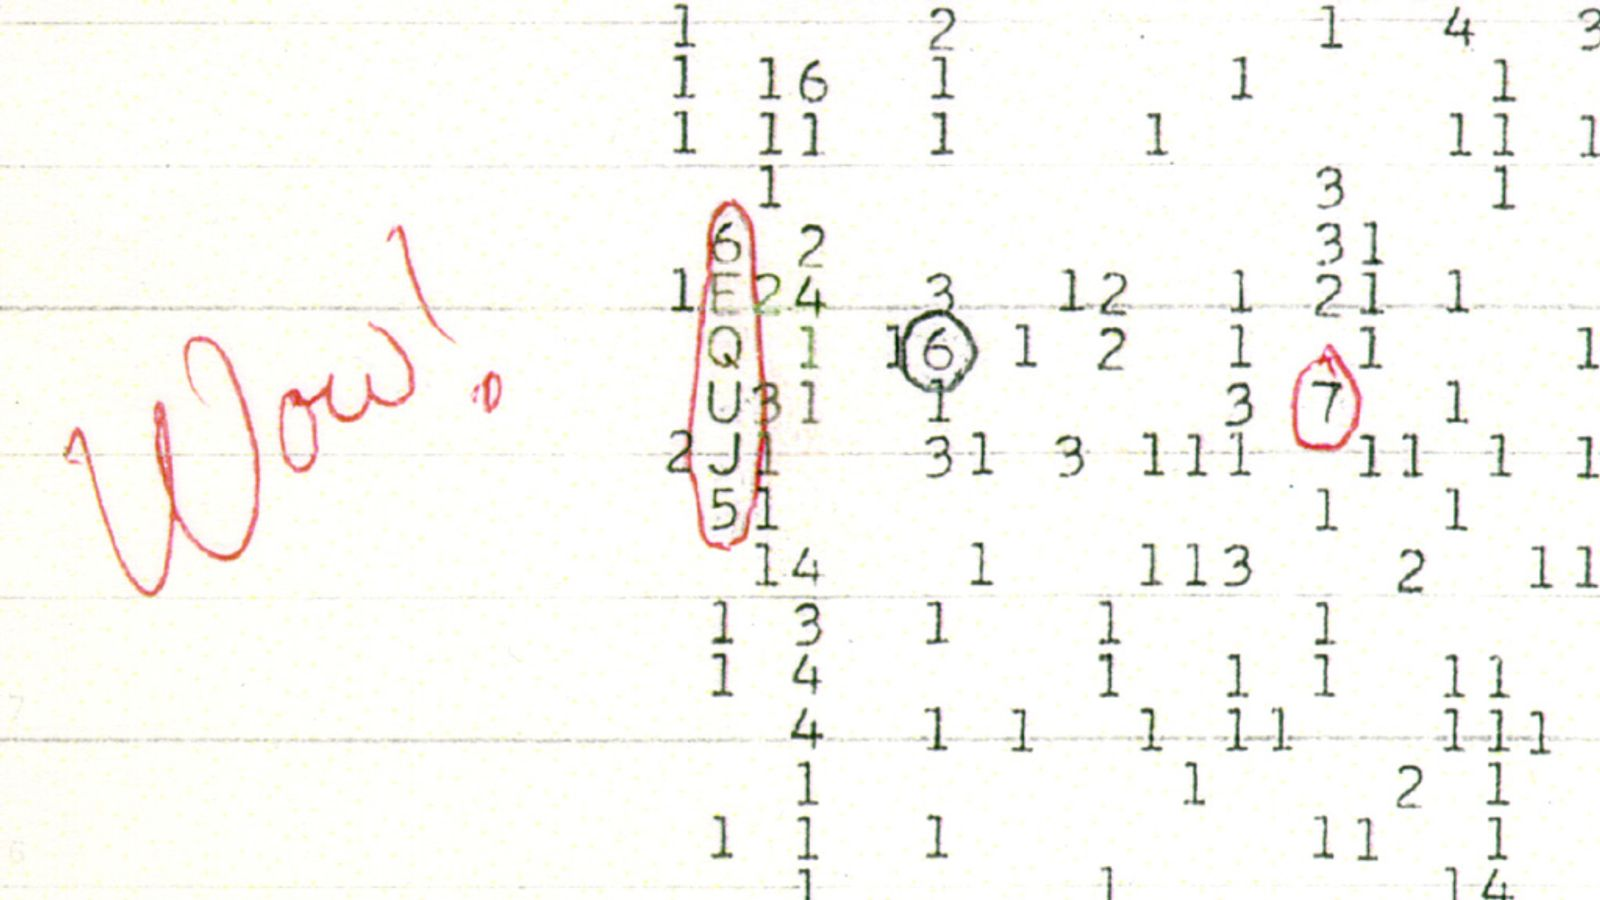 space 'WOW' Signal